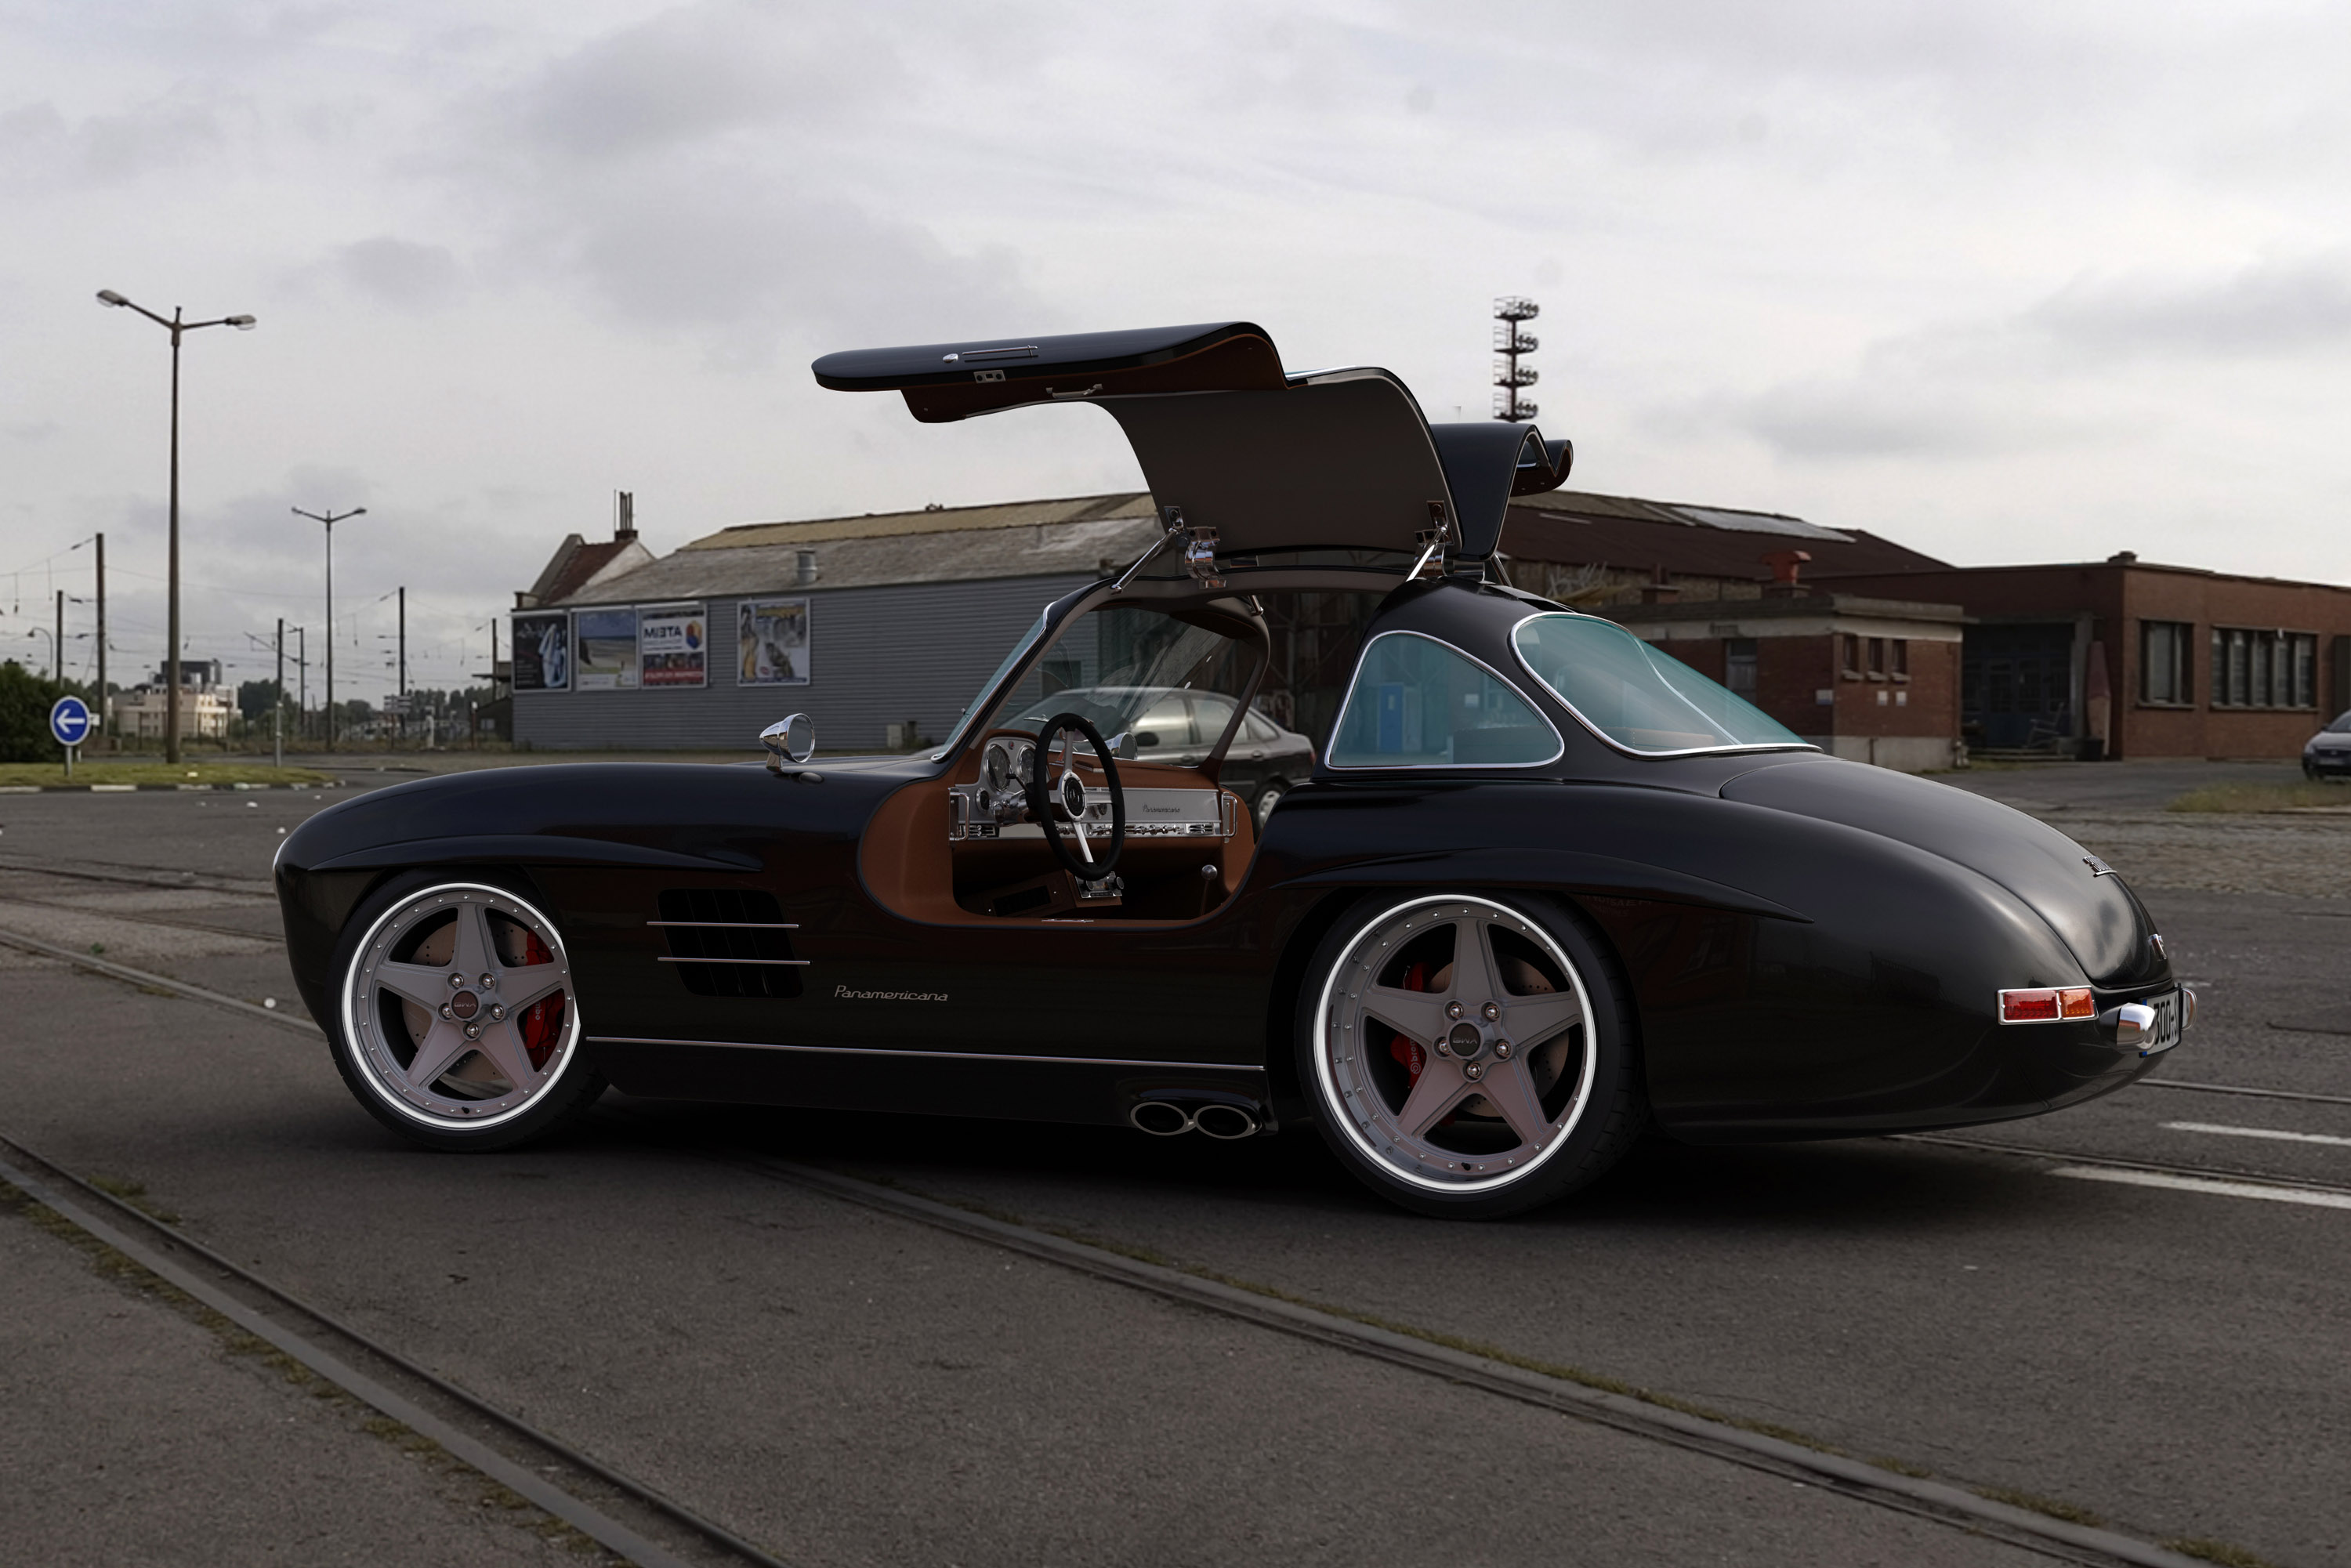 Mercedes Benz 300sl Gullwing Replica